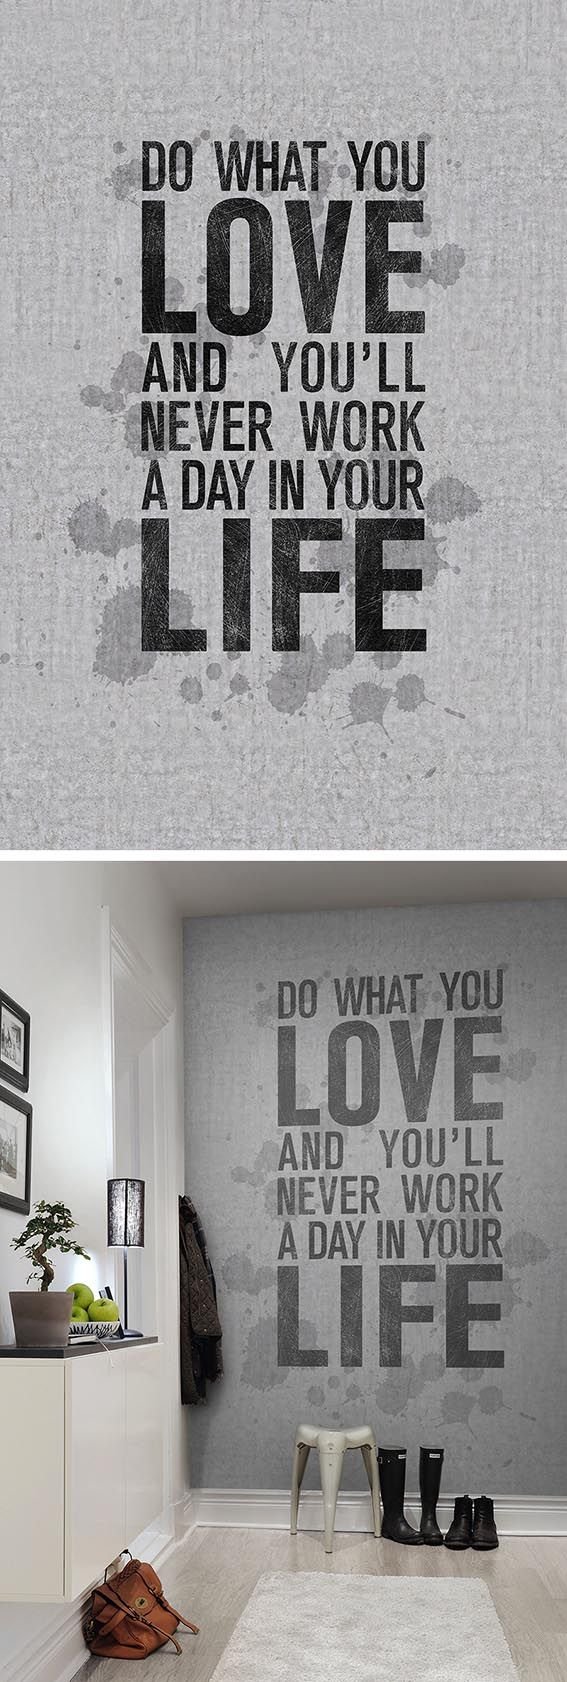 Bathroom wall decor quotes - If You Want To Create Something Special And Renew Your Interior Add The Decorative Words To Your Wall Quotes Will Show What You Like And Feel